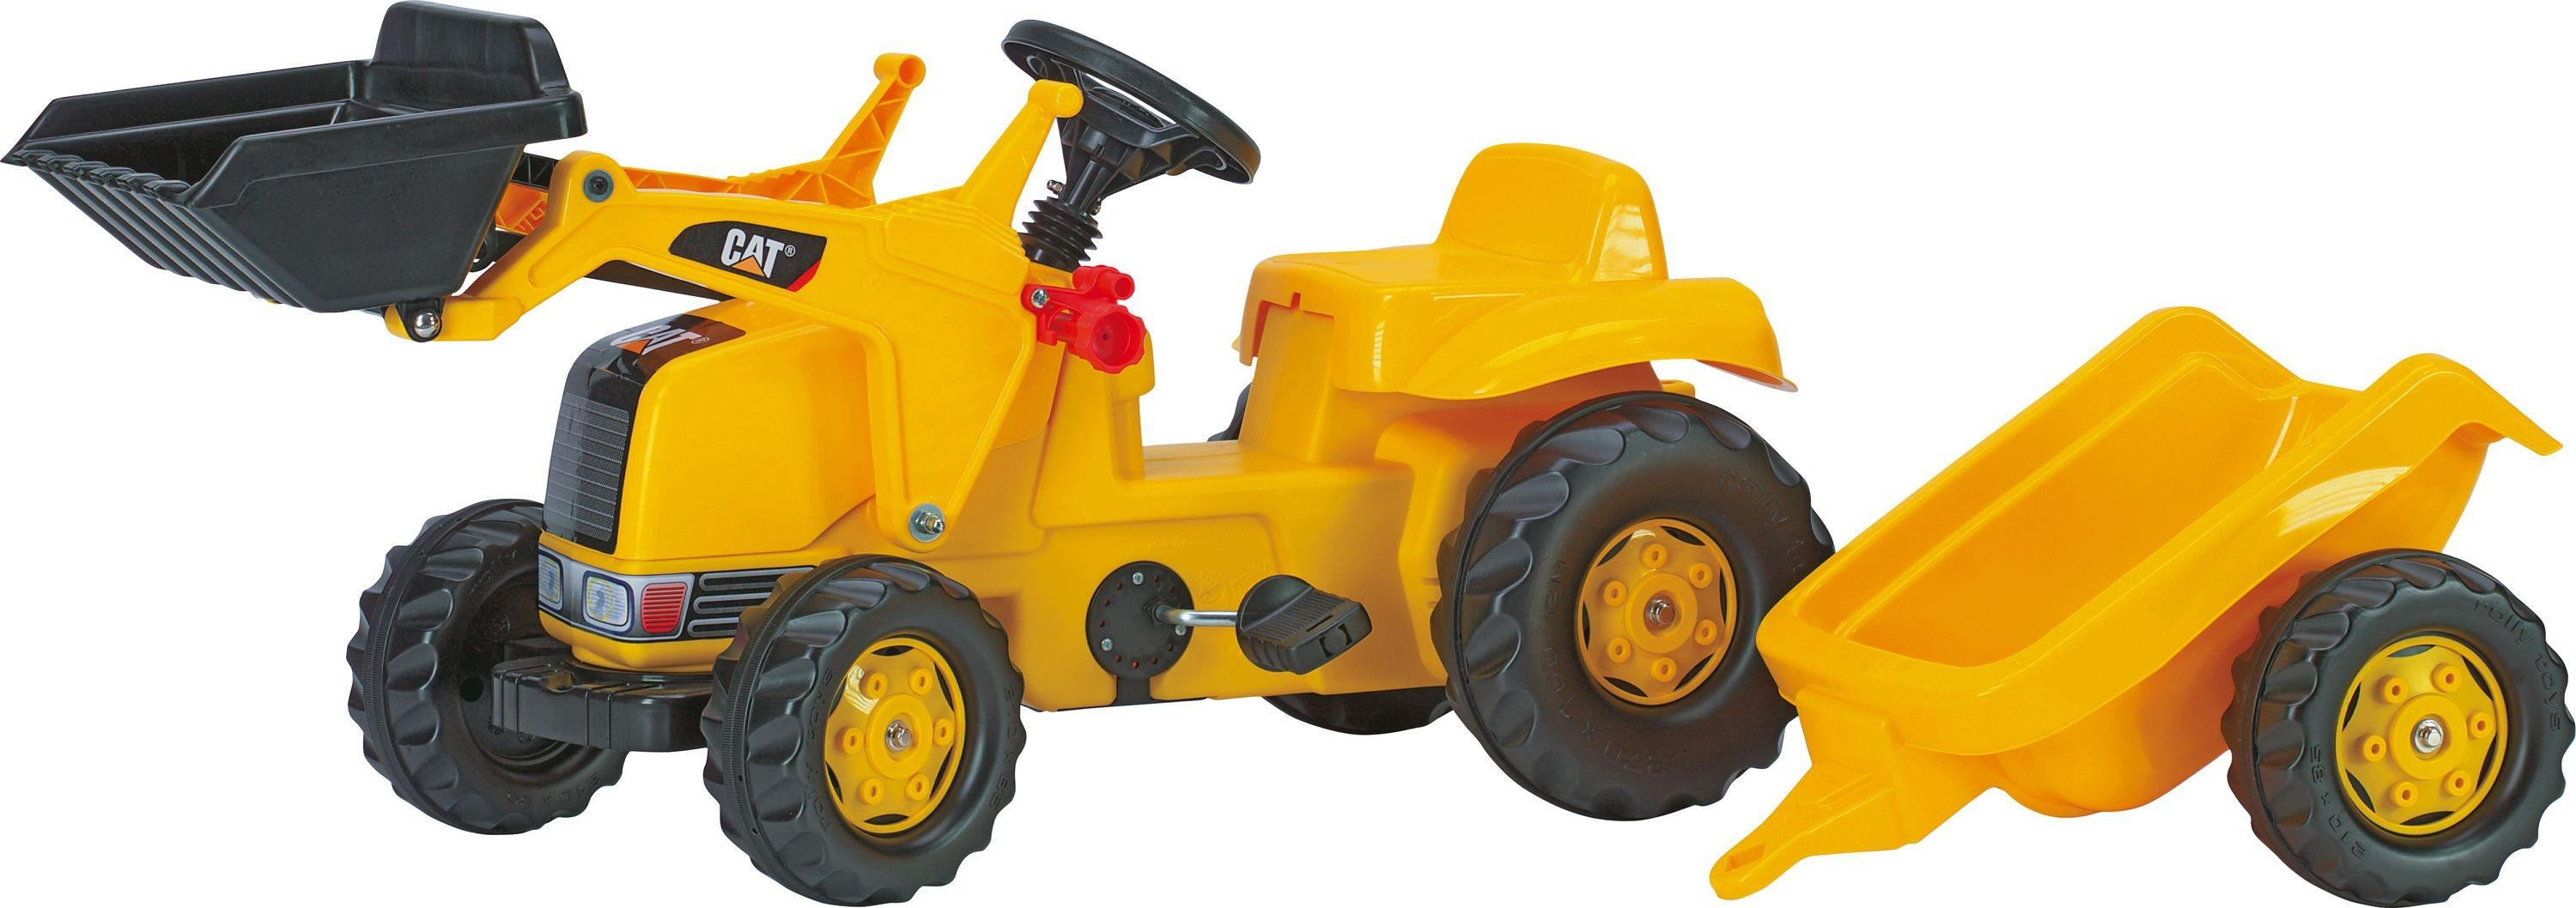 rolly-toys-cat-tractor-with-frontloader-trailer